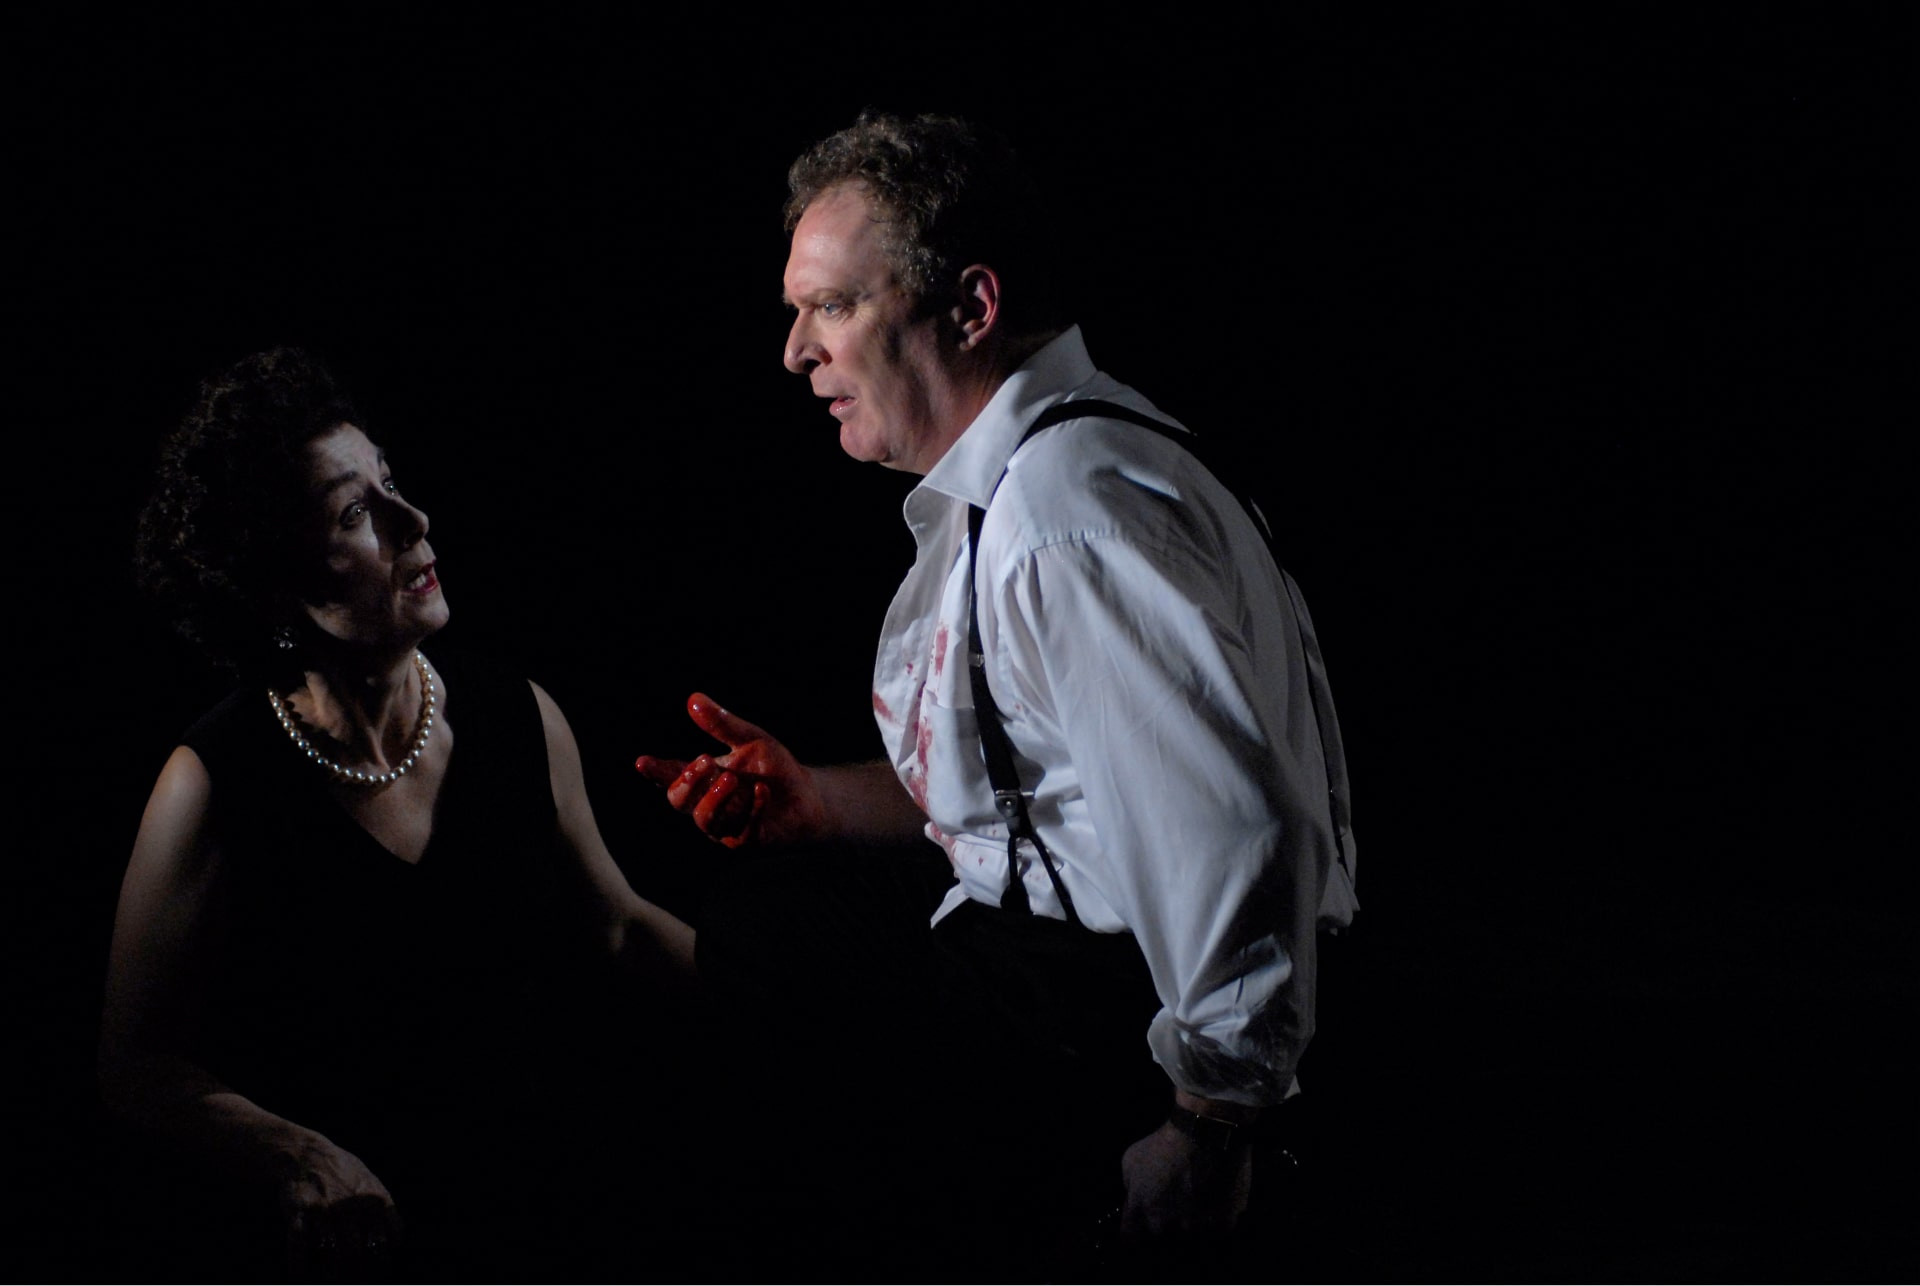 Woman in sleeveless black dress and pears stares at man in shirt-sleeves with bloody hand.